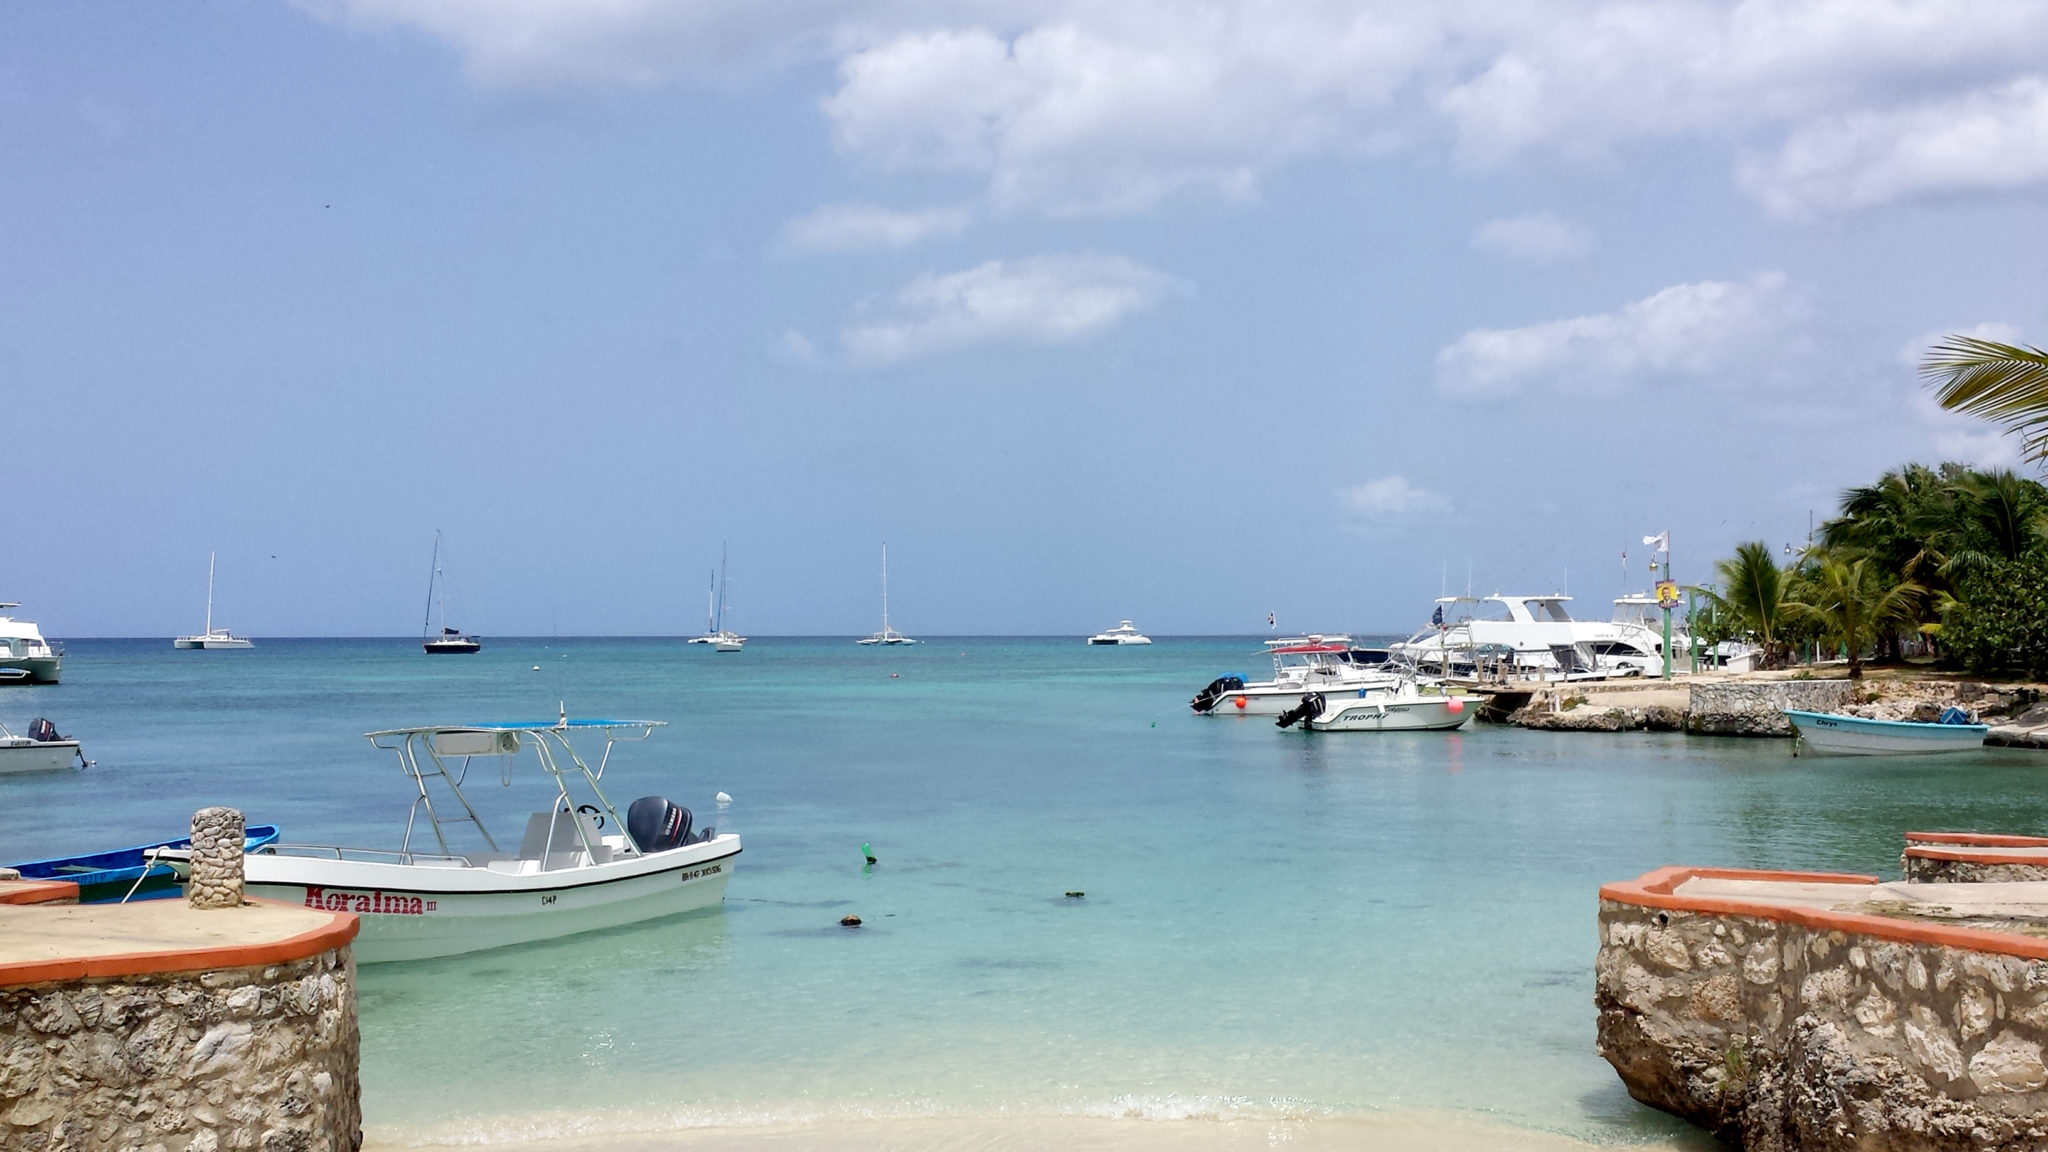 Republique_dominicaine_roadtrip_bayahibe_embarcadere_mer